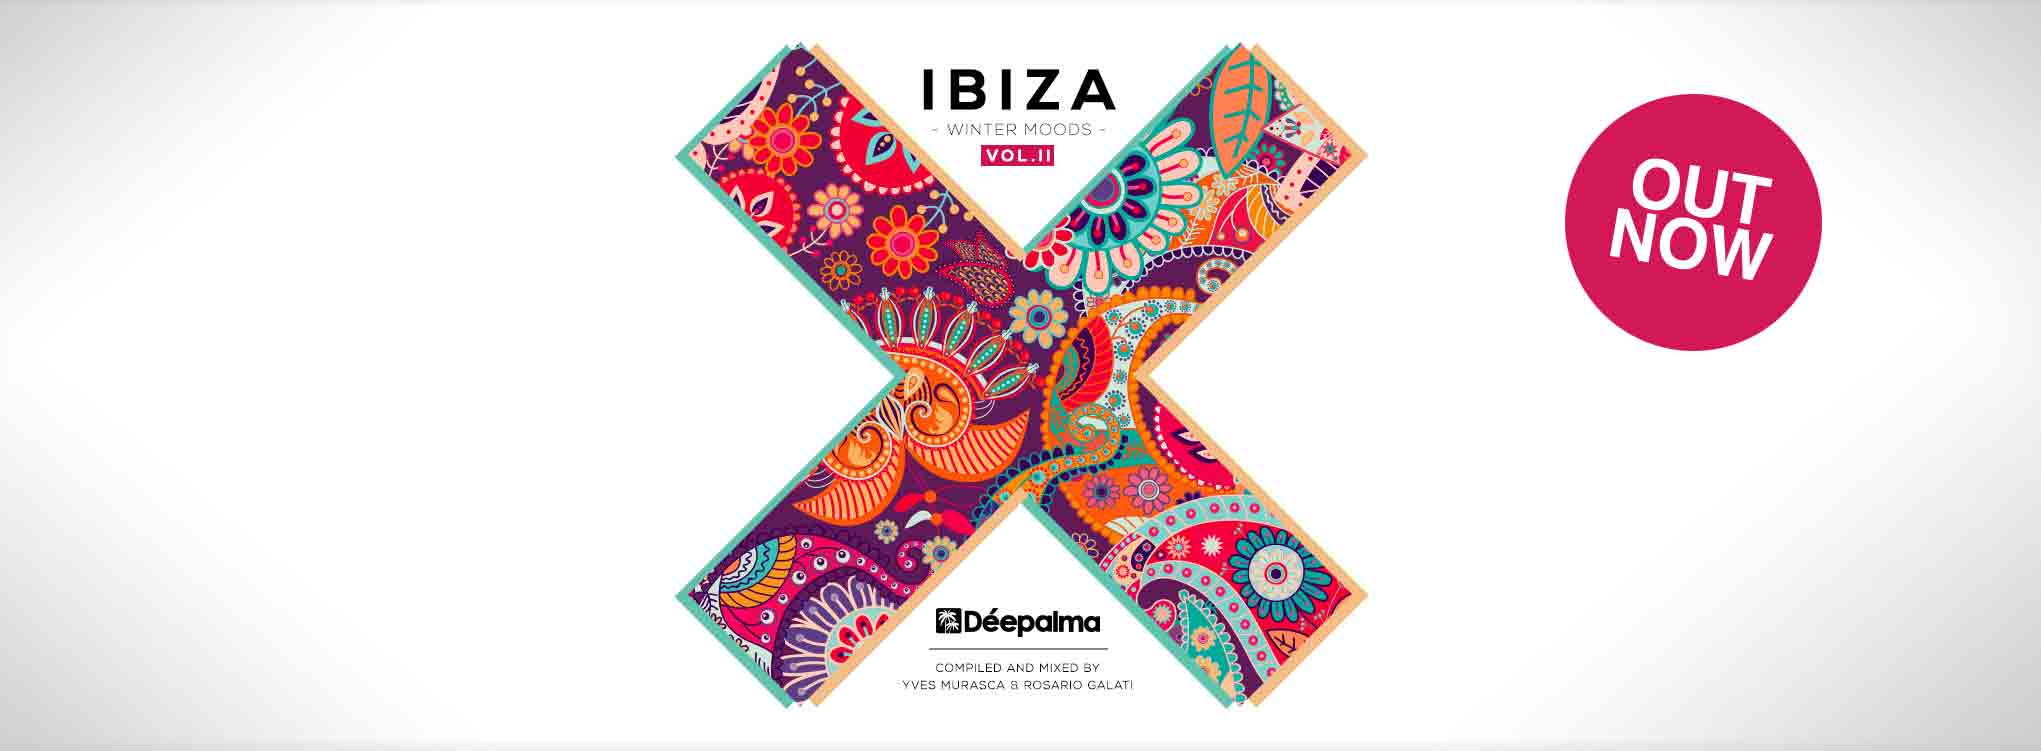 DPL_IBIZA_Winter_Moods_Vol2_Homepage_OUTNOW